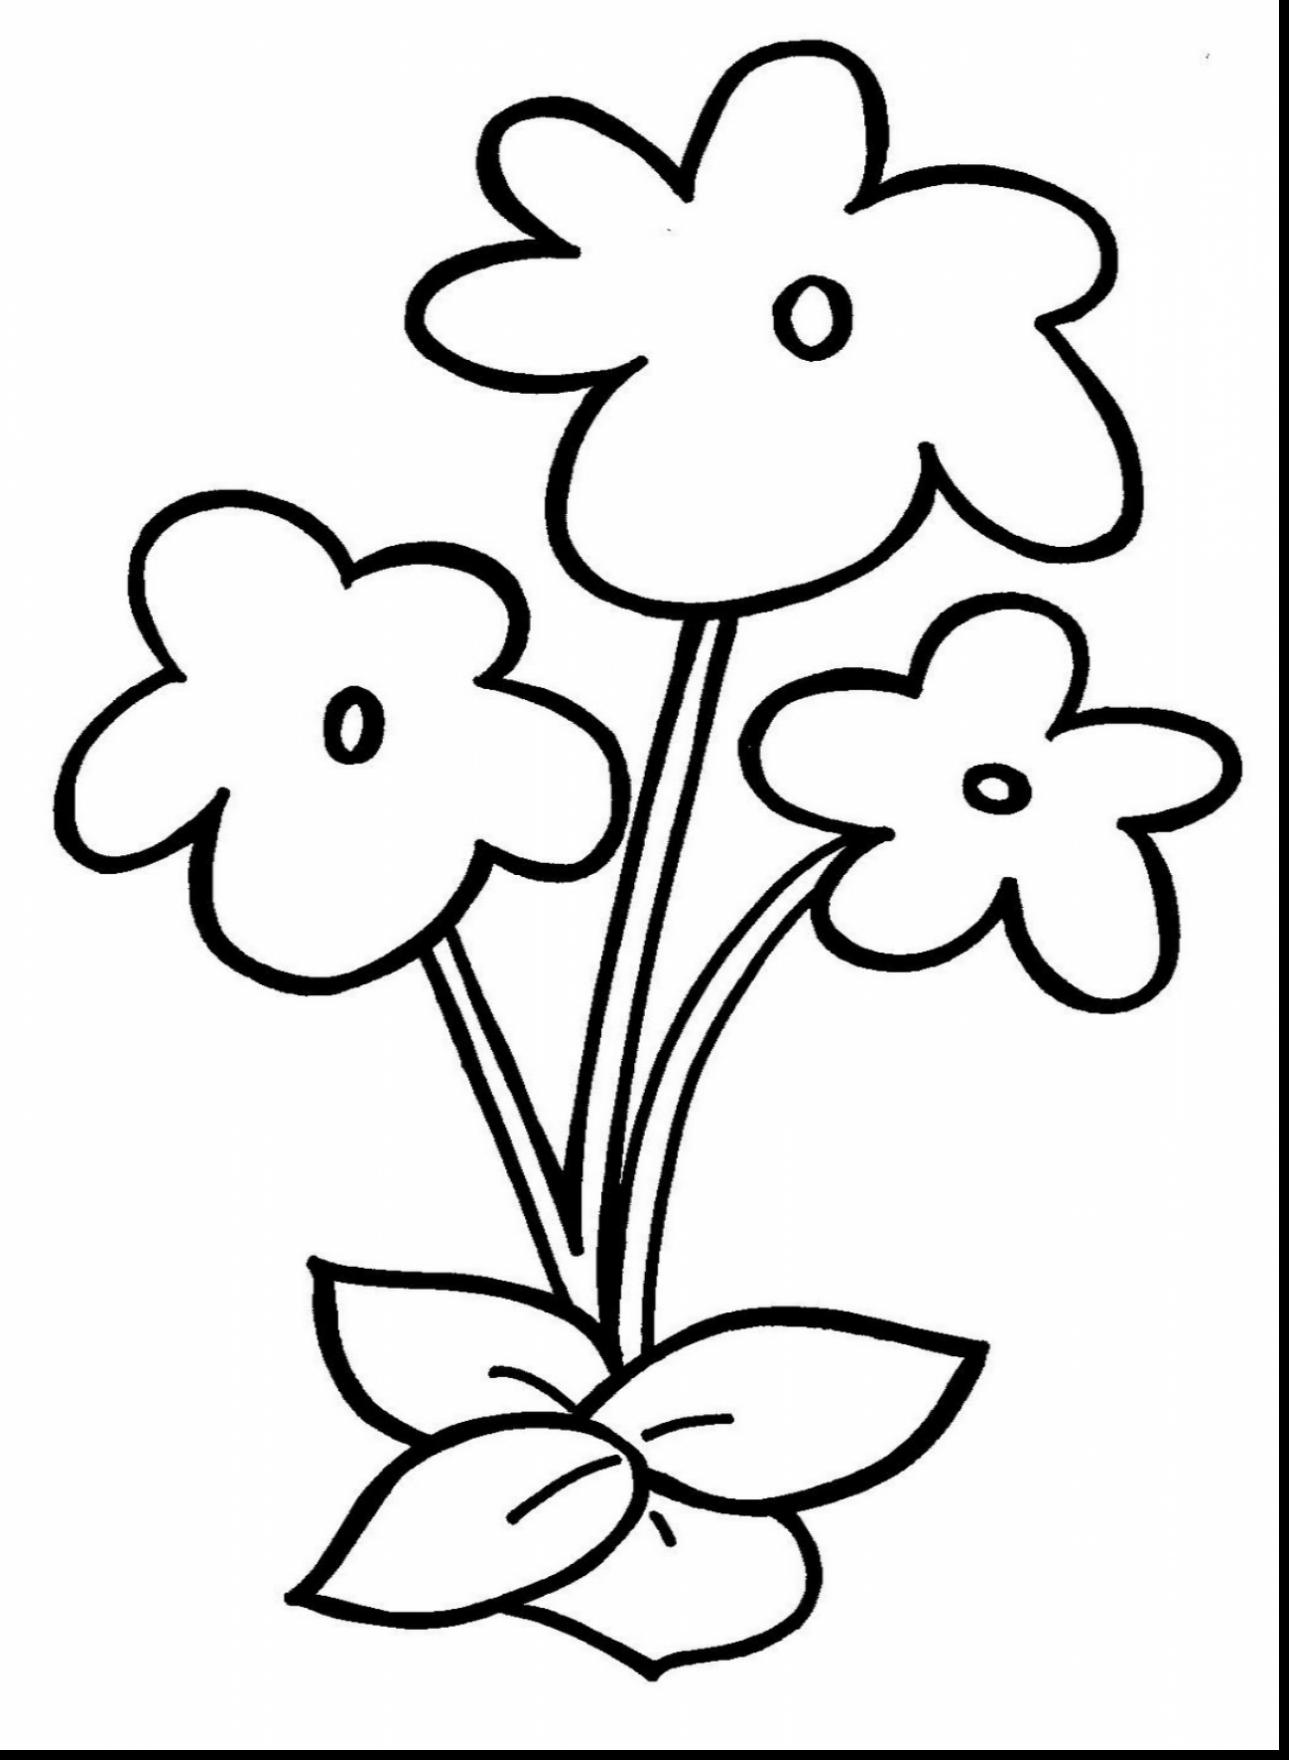 Preschool Coloring Pages At Getcolorings